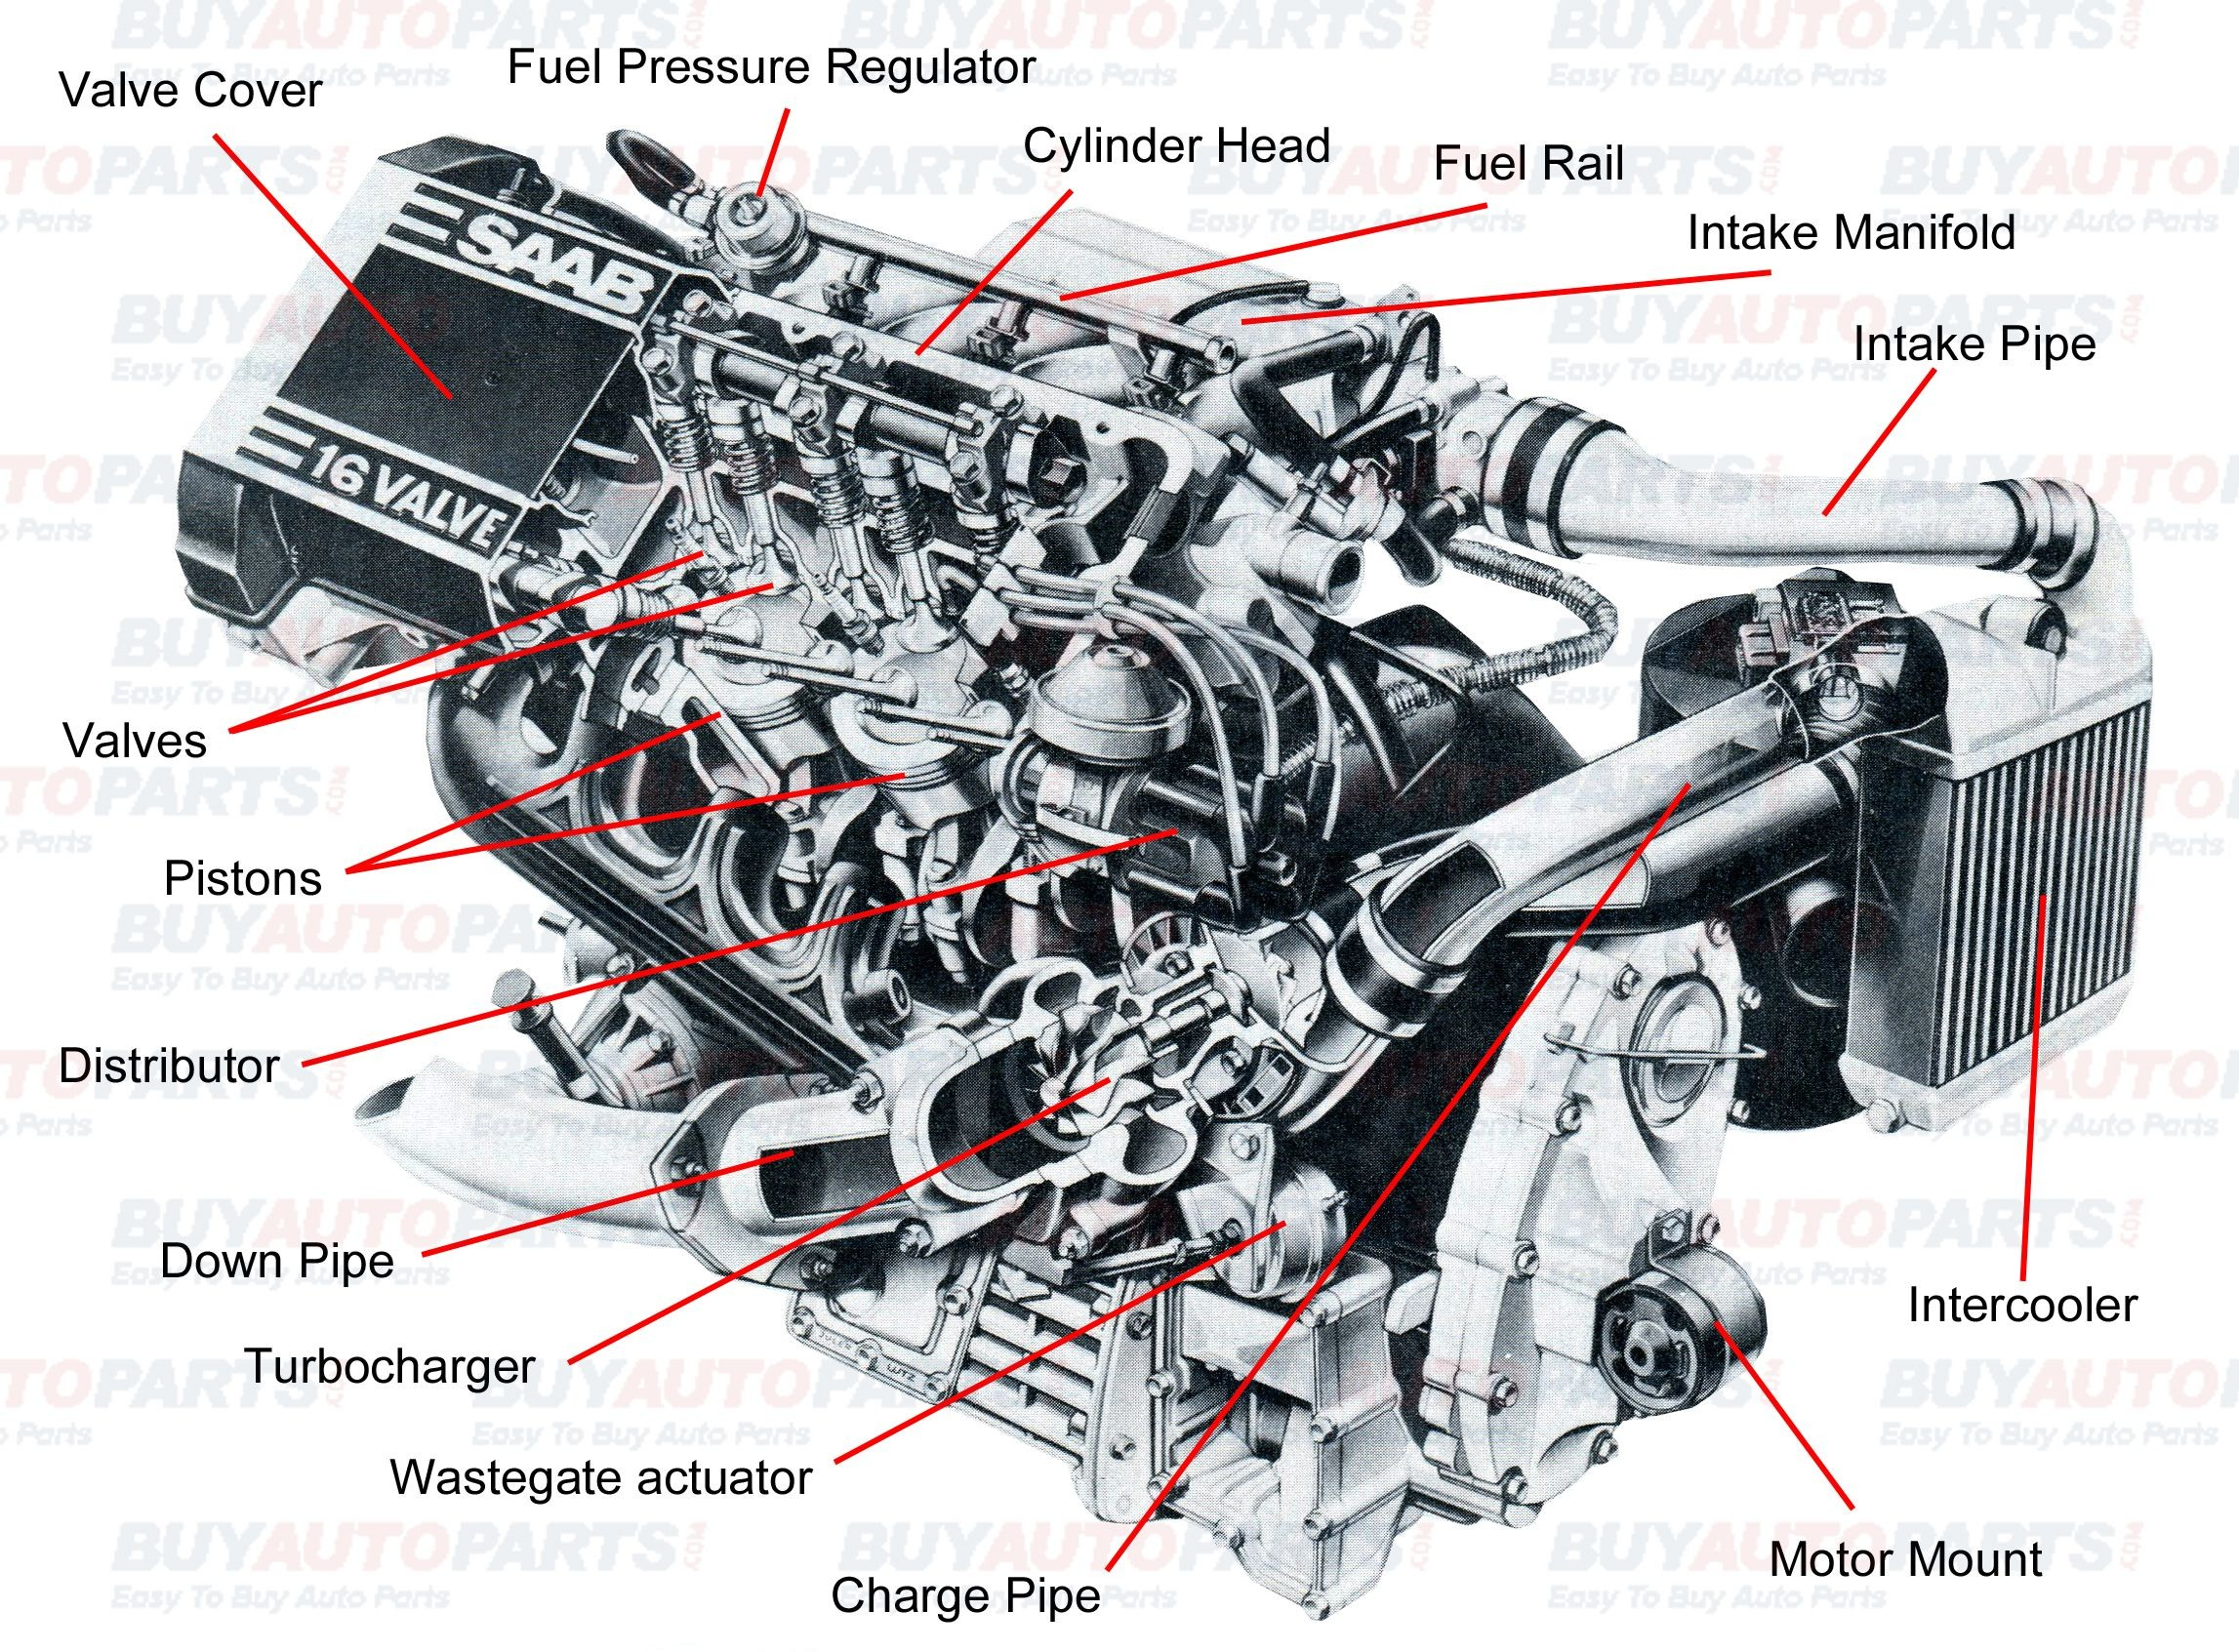 Turbo Motor Diagram Trusted Wiring Diagrams How Does A Work Turbocharger Parts My Learn About The Major Ponents And Basic